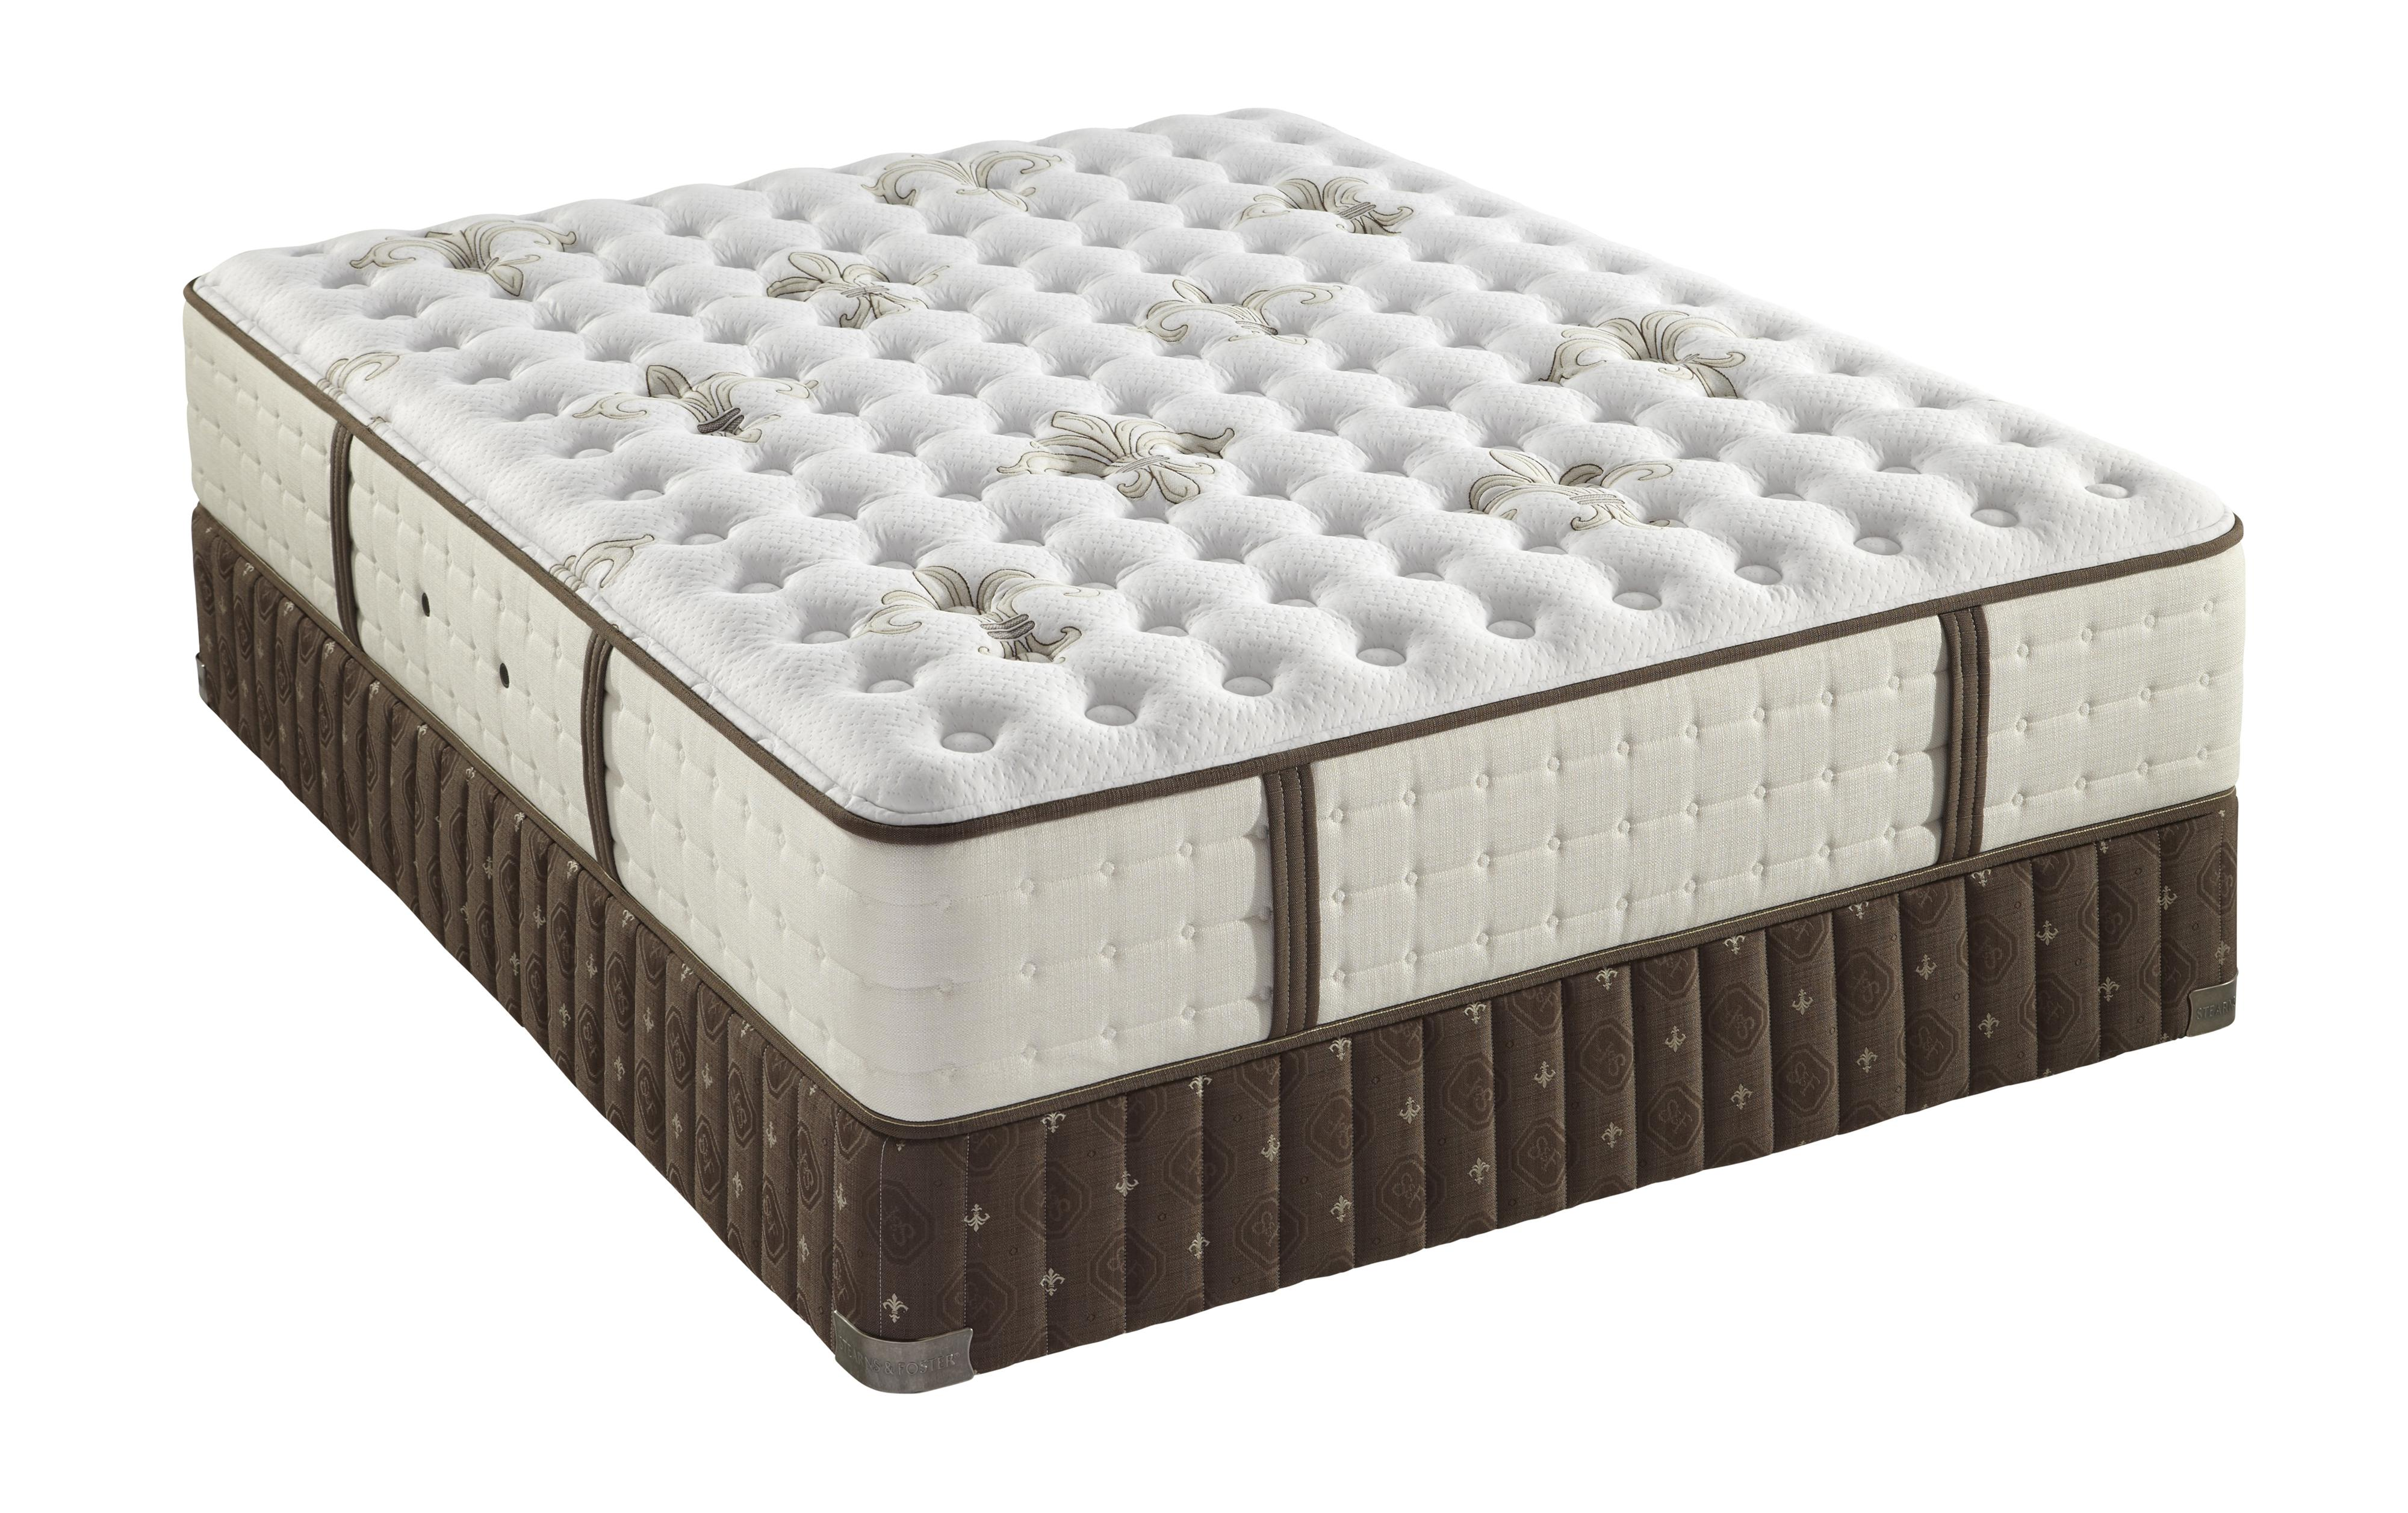 Stearns & Foster Coningsby Full Cushion Firm Mattress - Item Number: CushionFirm-F